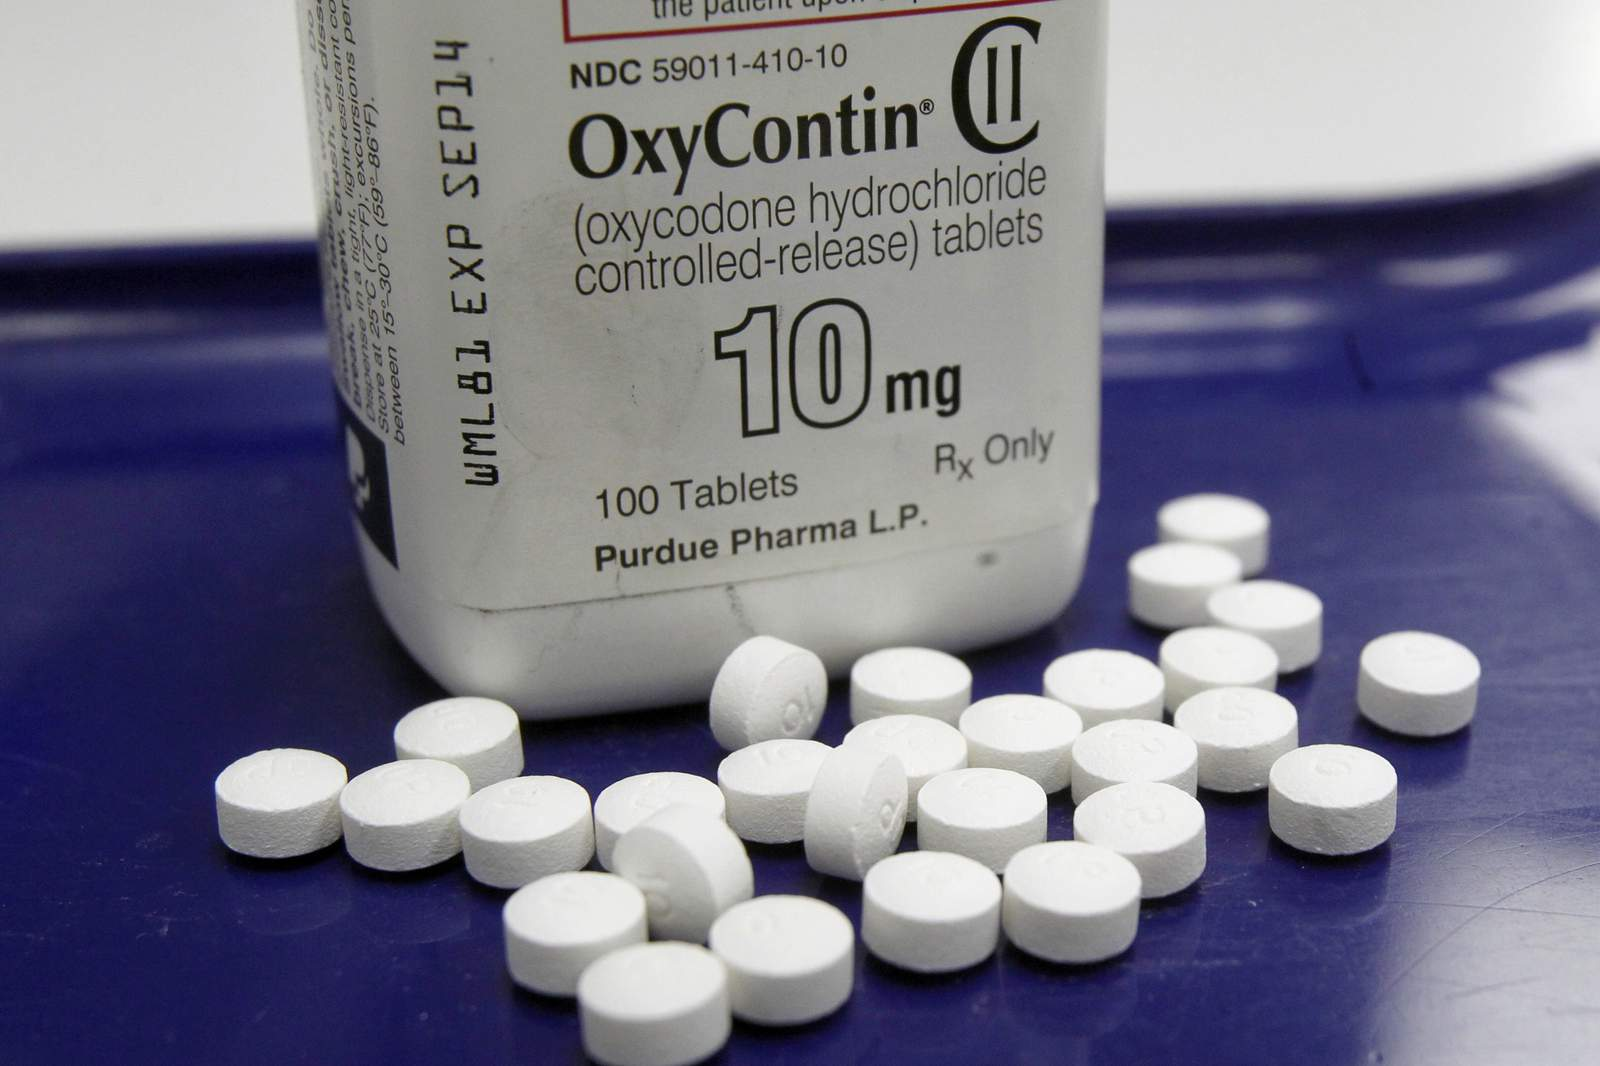 Experts: Revamped OxyContin hasn't curbed abuse, overdoses